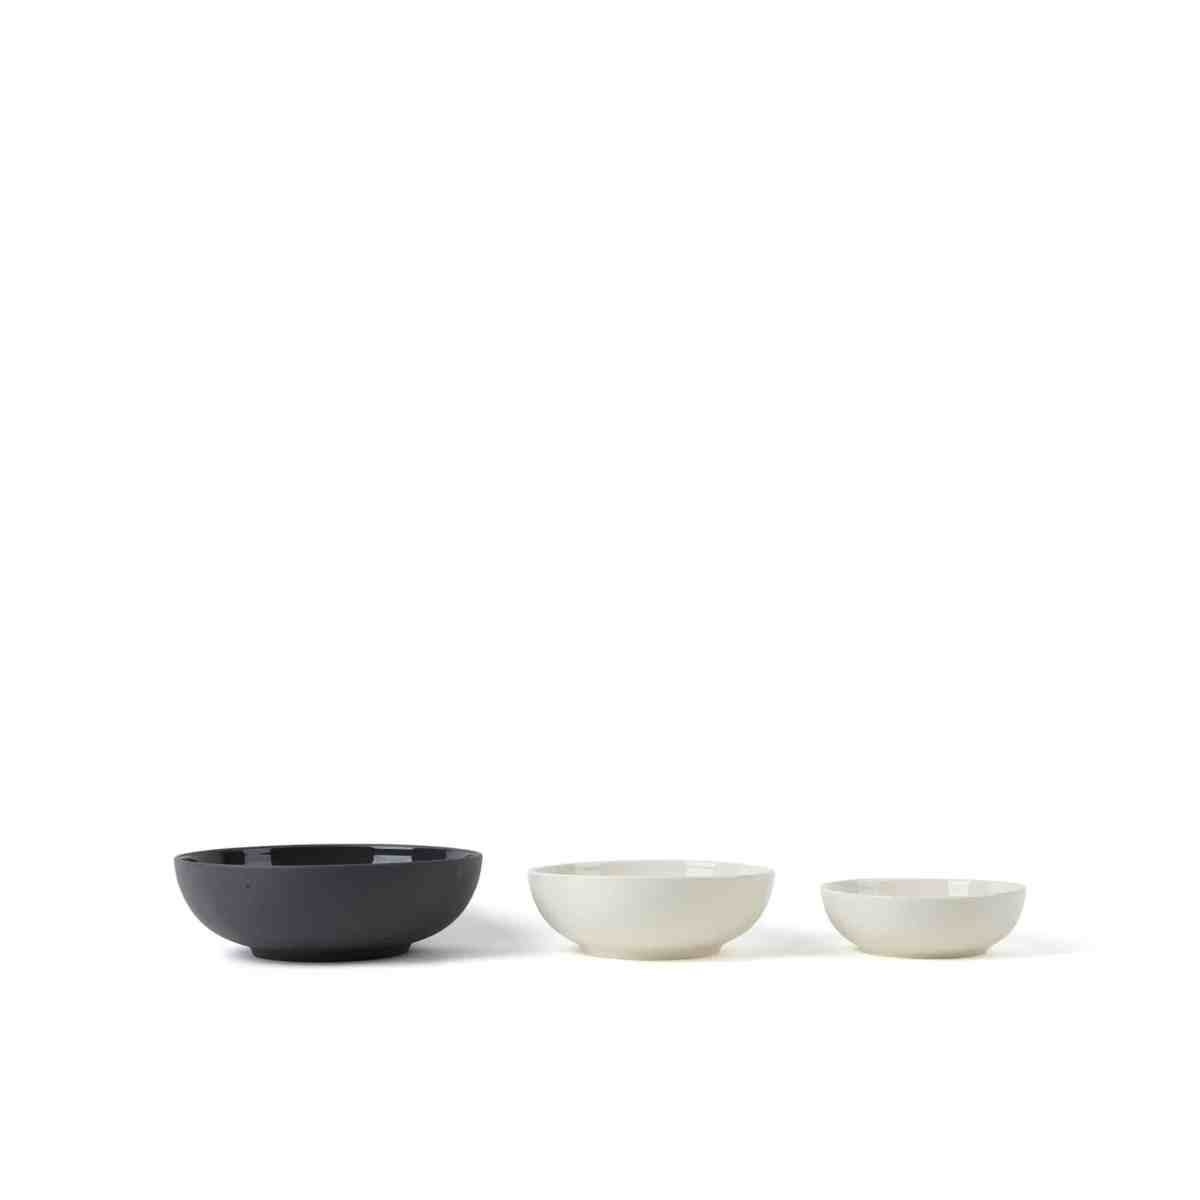 pottery-series-serving-dish-black-another-country-005